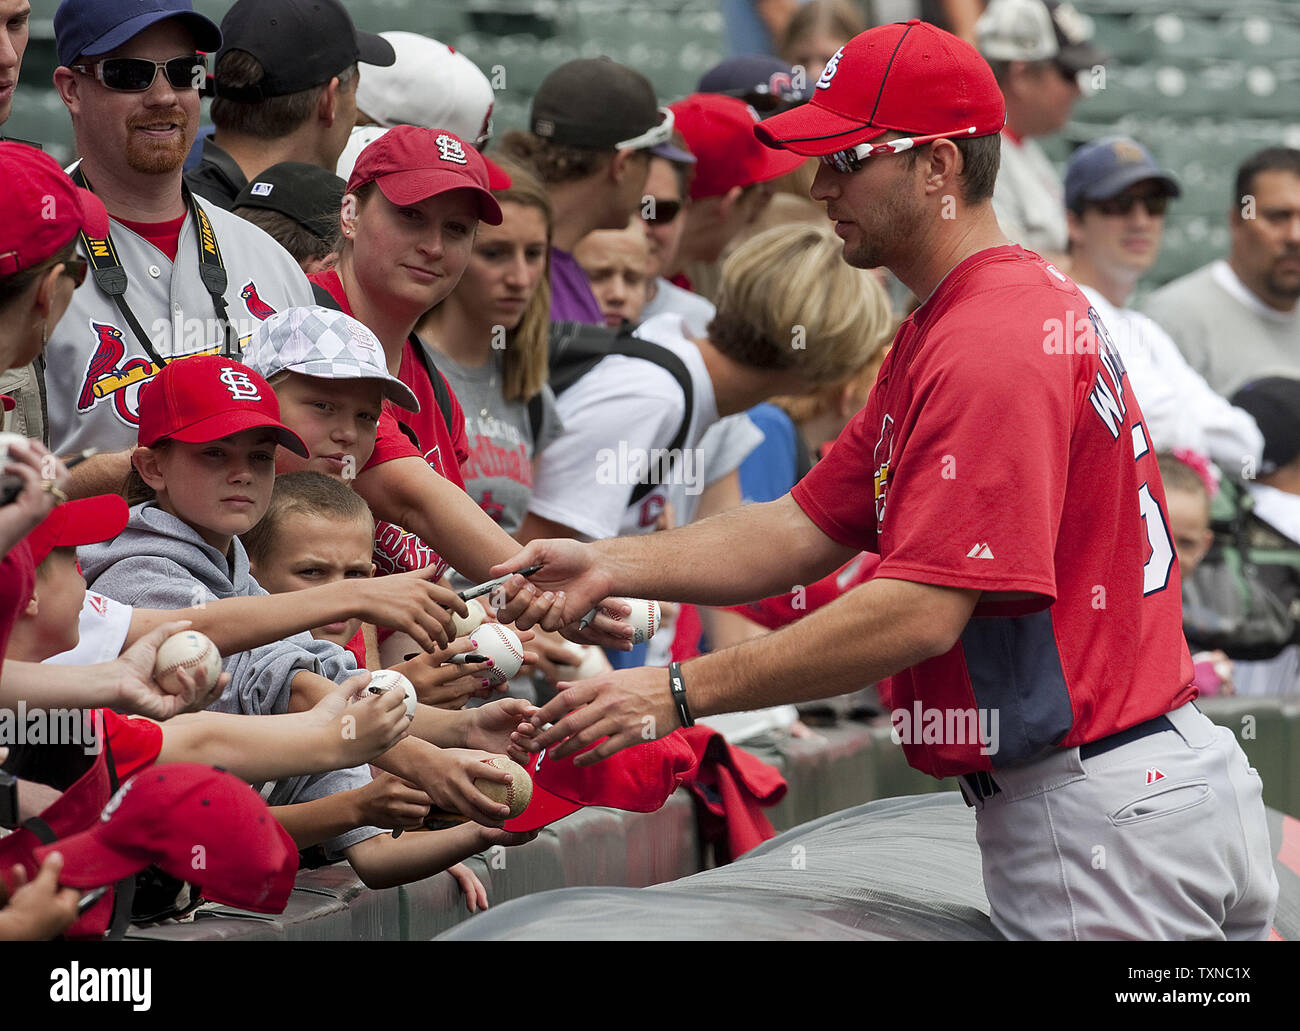 St. Louis Cardinals pitcher Adam Wainwright signs autographs for fans at Coors Field on July 8, 2010 in Denver.   Wainwright earned his very first All-Star team selection.                UPI/Gary C. Caskey - Stock Image